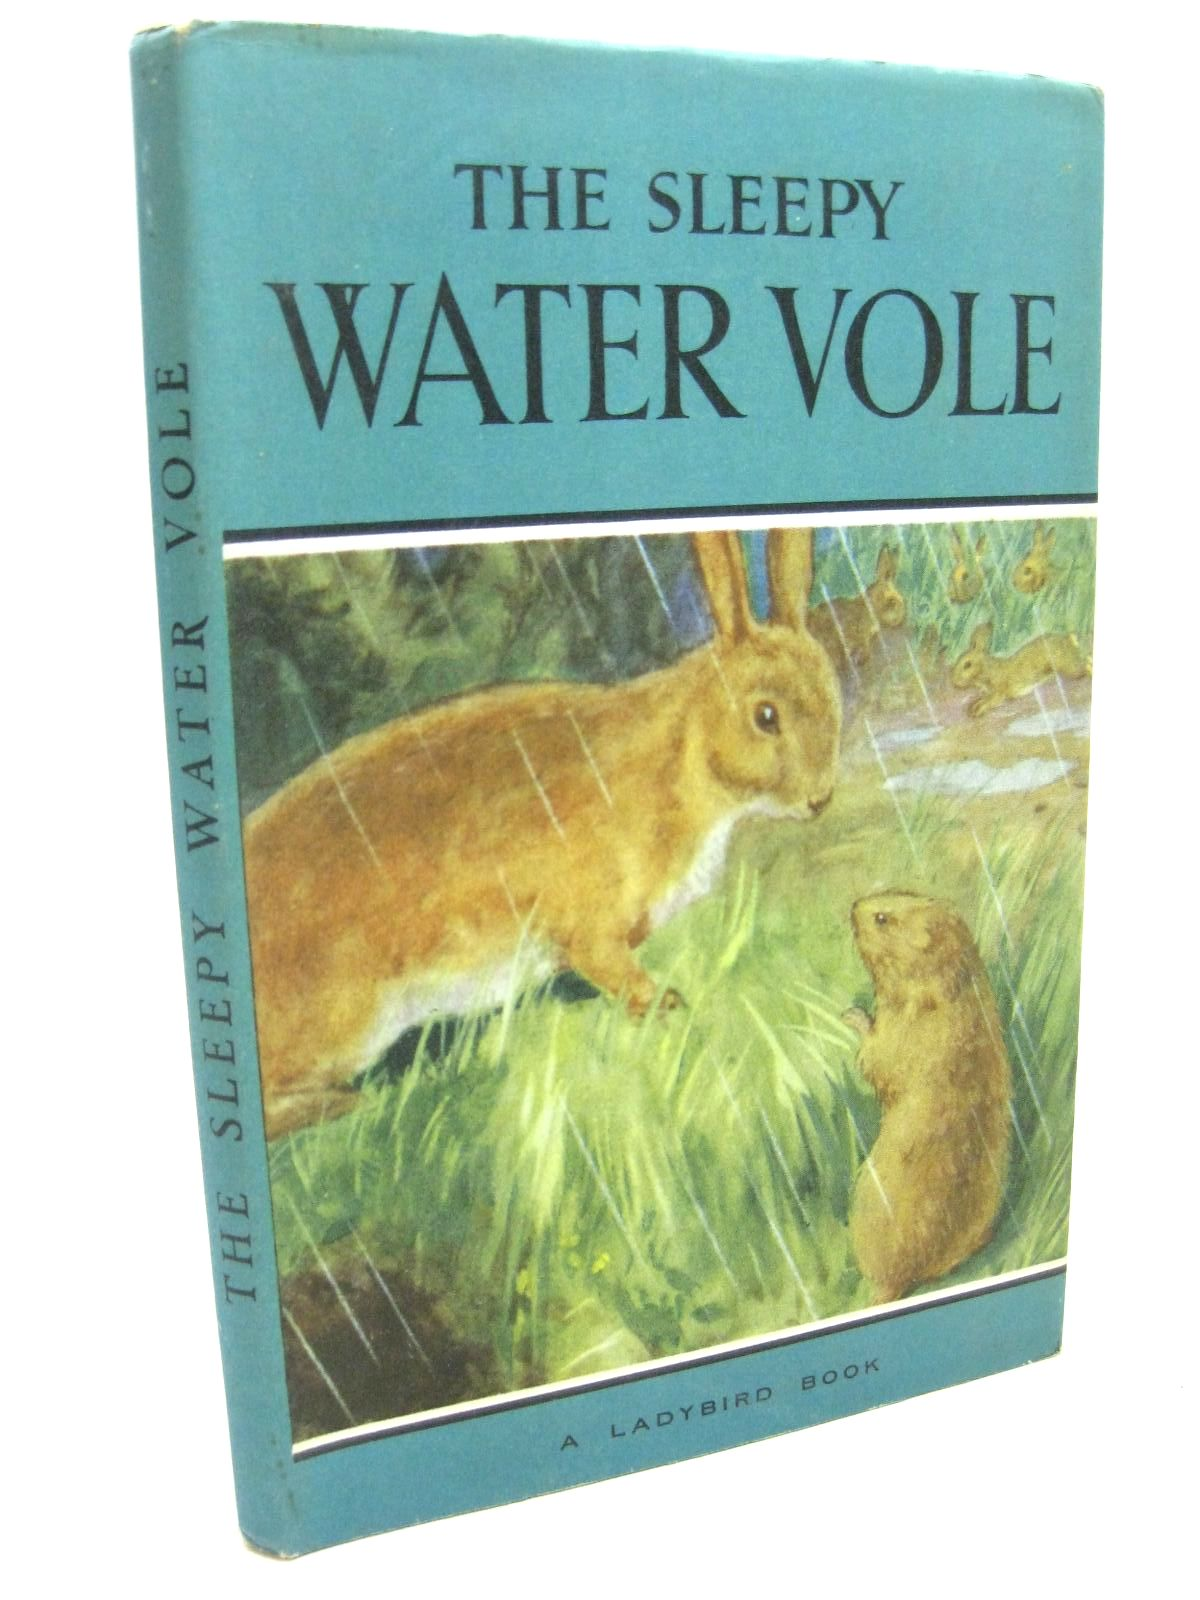 Photo of THE SLEEPY WATER VOLE written by Barr, Noel illustrated by Hickling, P.B. published by Wills & Hepworth Ltd. (STOCK CODE: 1316155)  for sale by Stella & Rose's Books